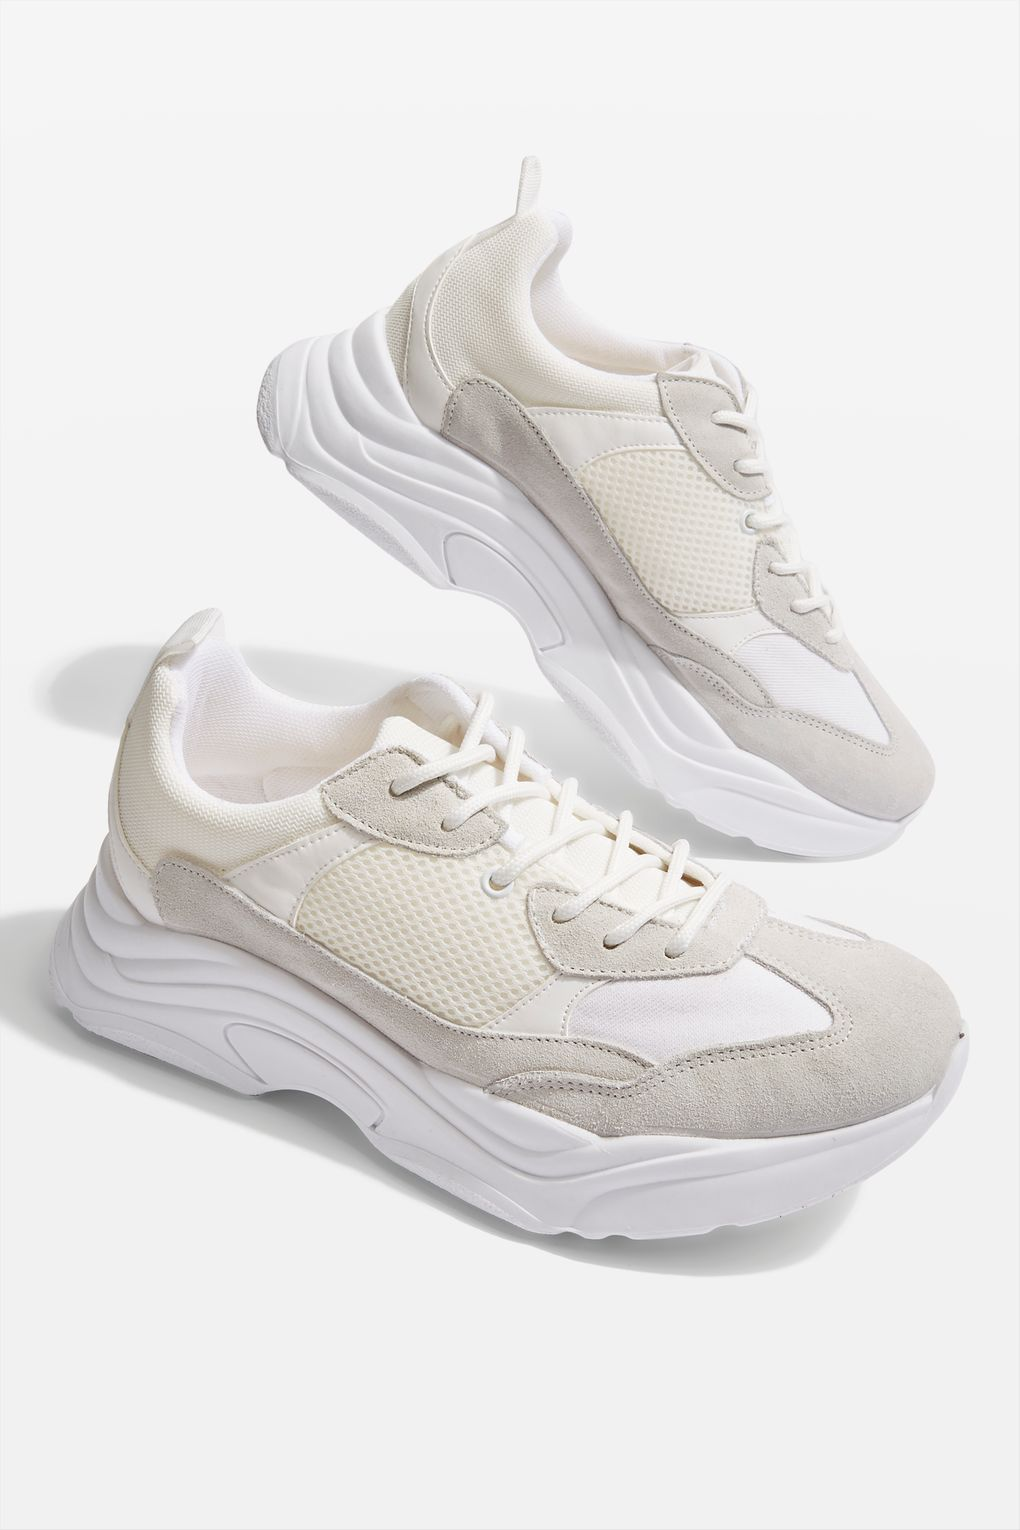 brand new 22b8c b512b Zara Finally Recreated Those Balenciaga Sneakers Everyone Is Wearing   Heres your chance to grab trendy sneakers for 65.